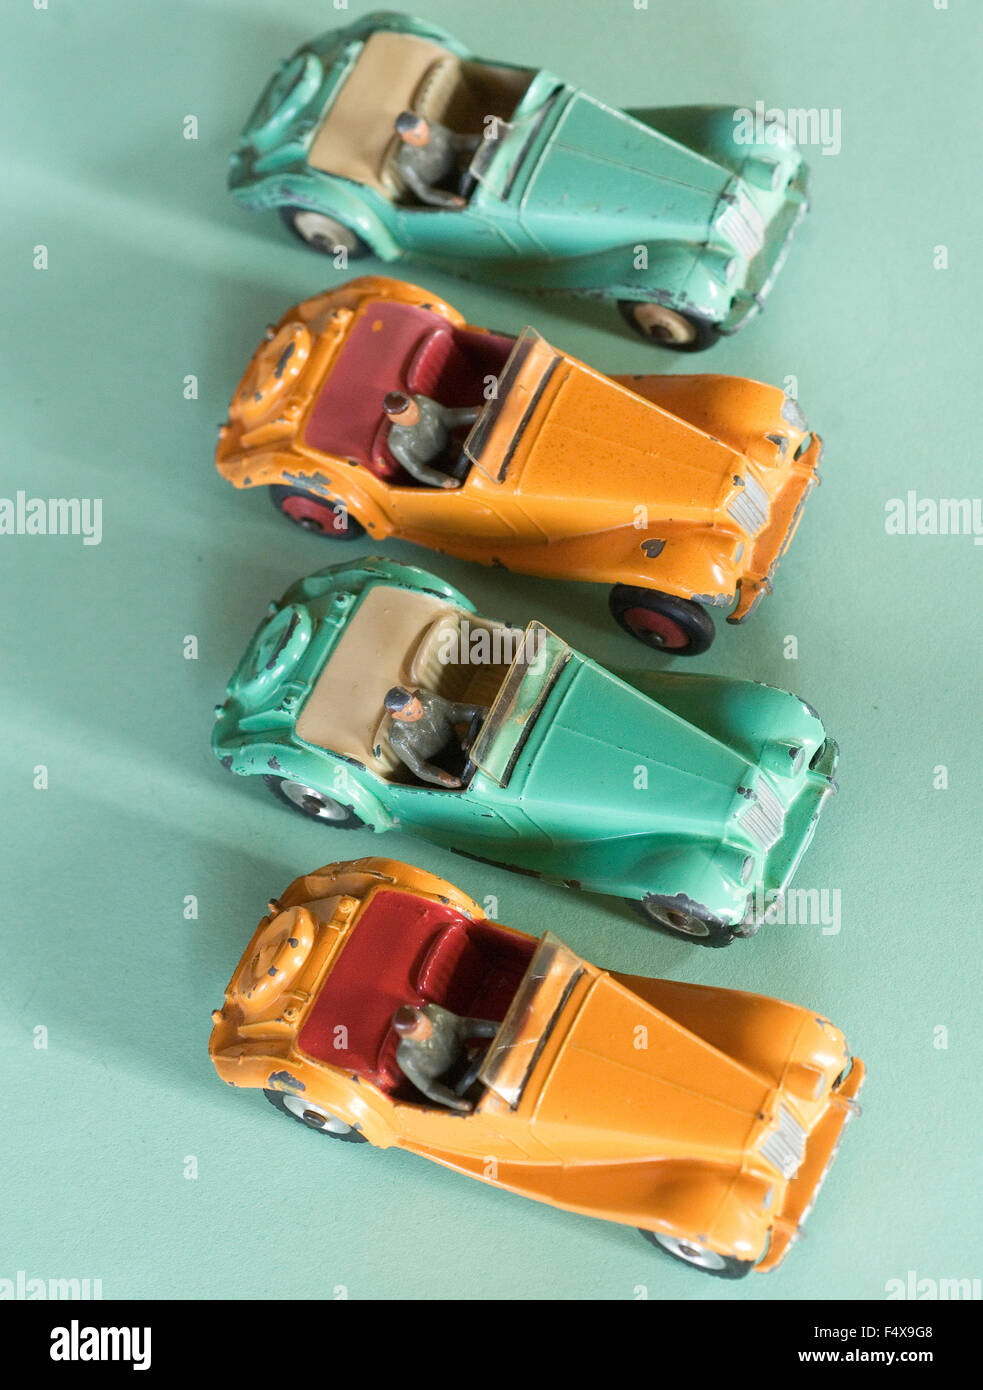 Four dinky sports cars in a row. MG's Orange and Green. - Stock Image